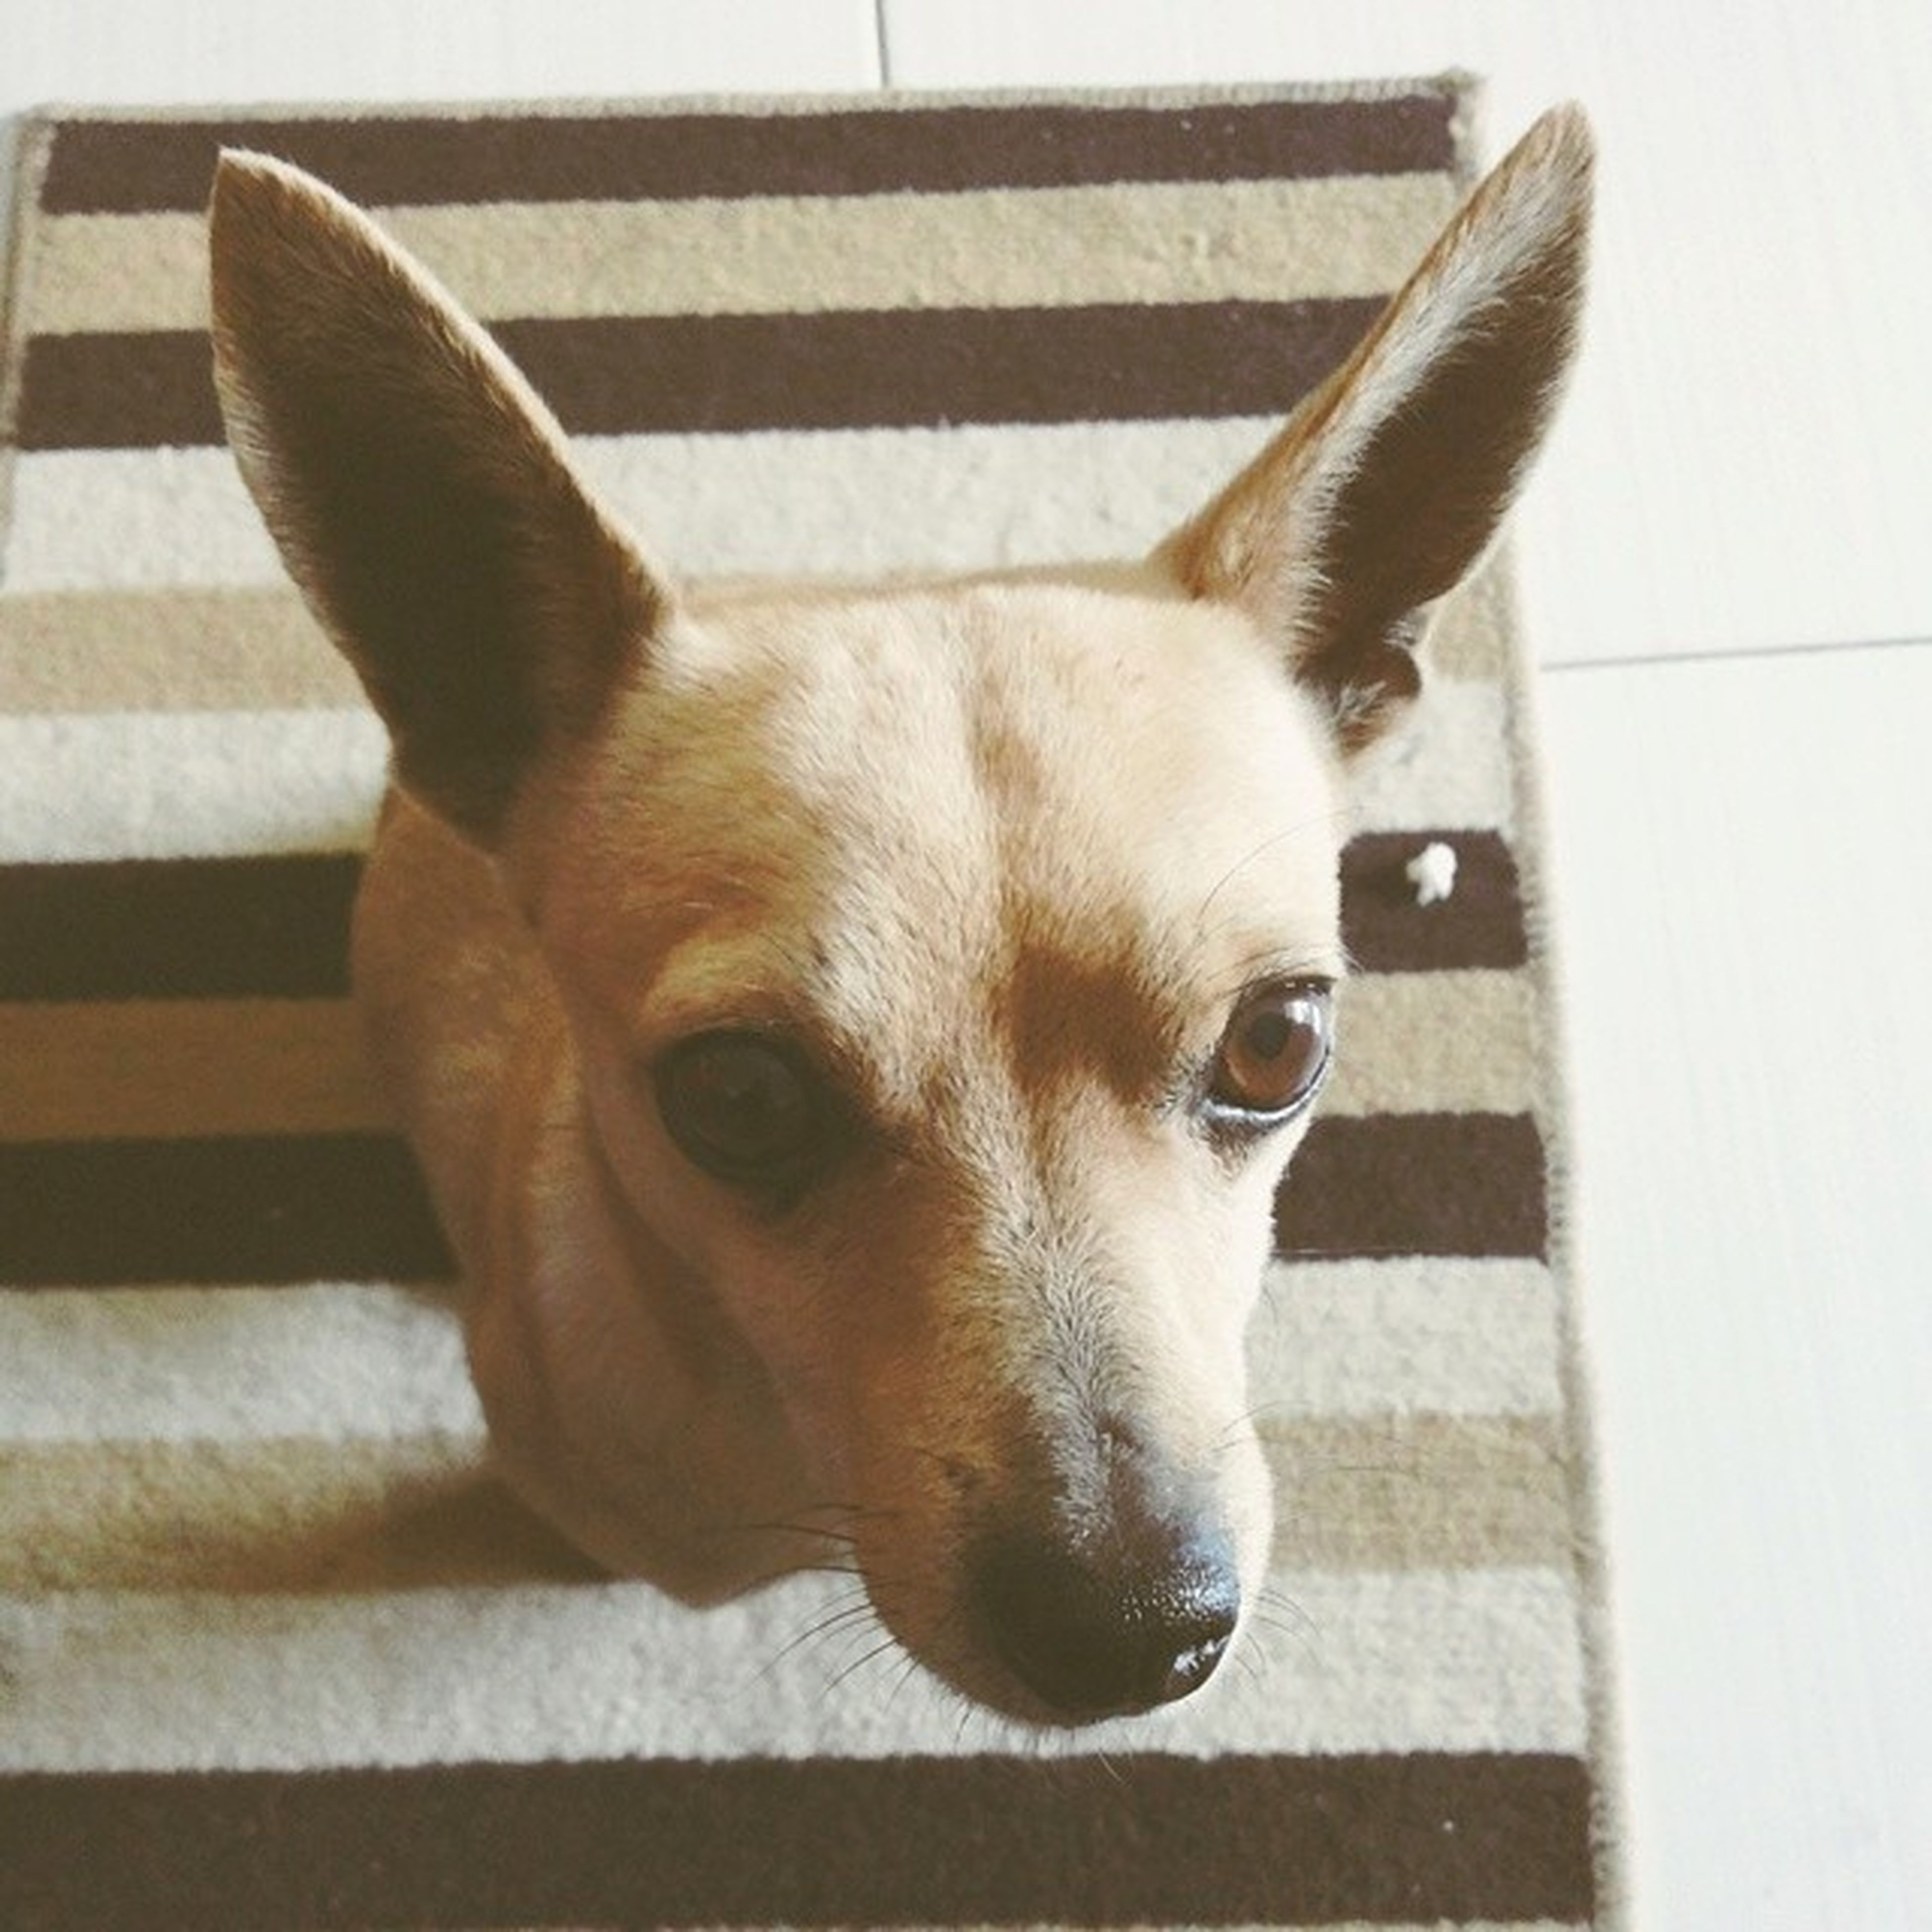 domestic animals, pets, animal themes, one animal, dog, mammal, indoors, portrait, looking at camera, animal head, close-up, animal body part, relaxation, flooring, front view, home interior, snout, no people, floor